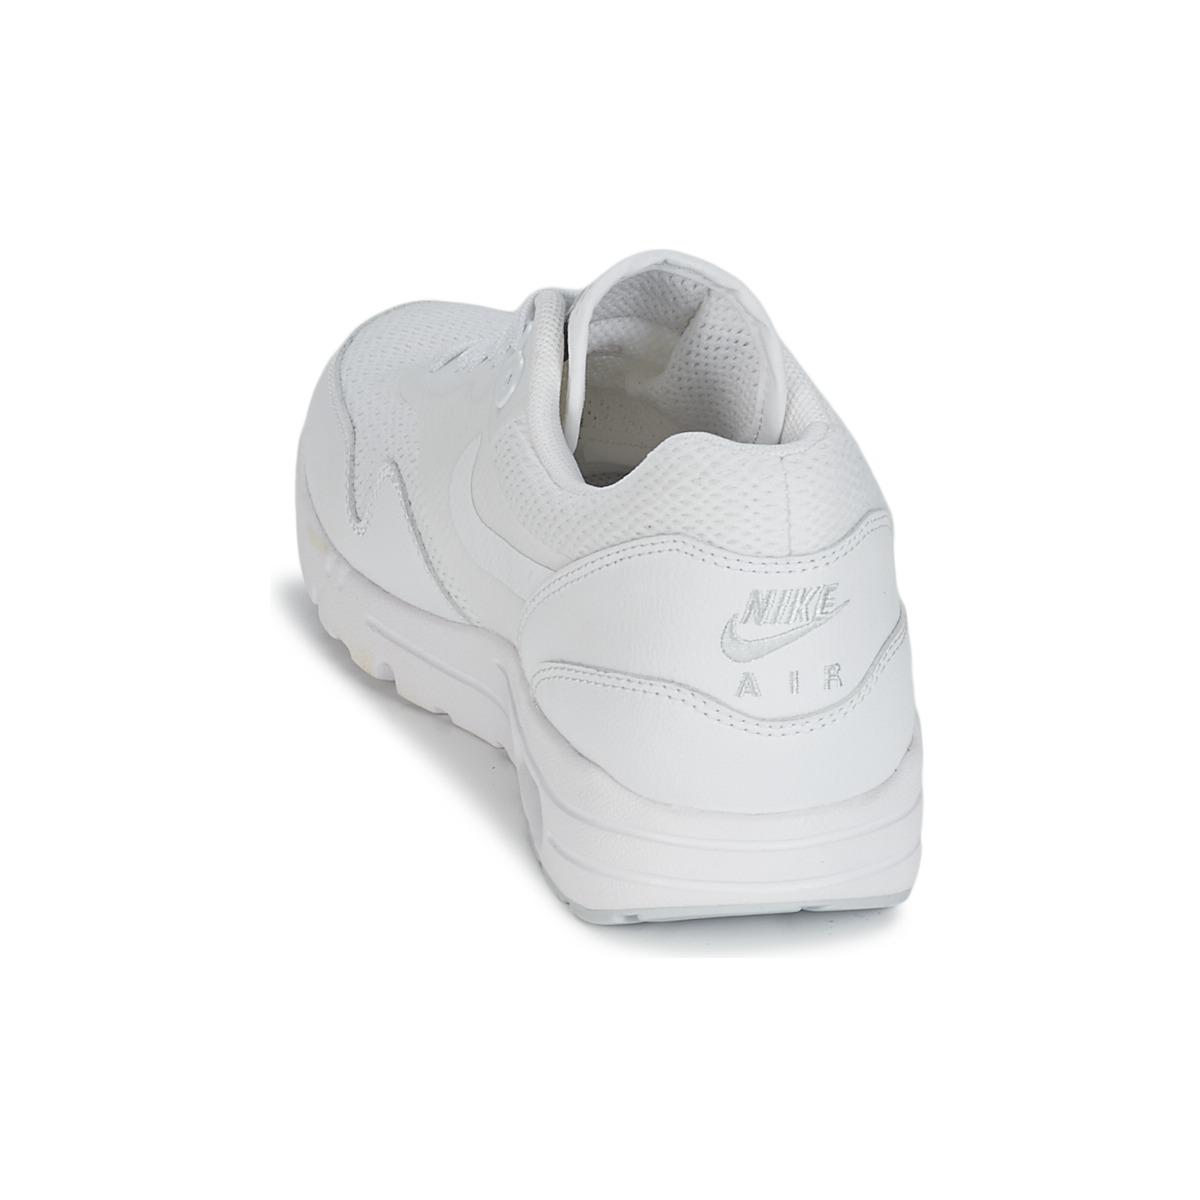 Nike Air Max 1 Ultra Essential W Women's Shoes (trainers) In White